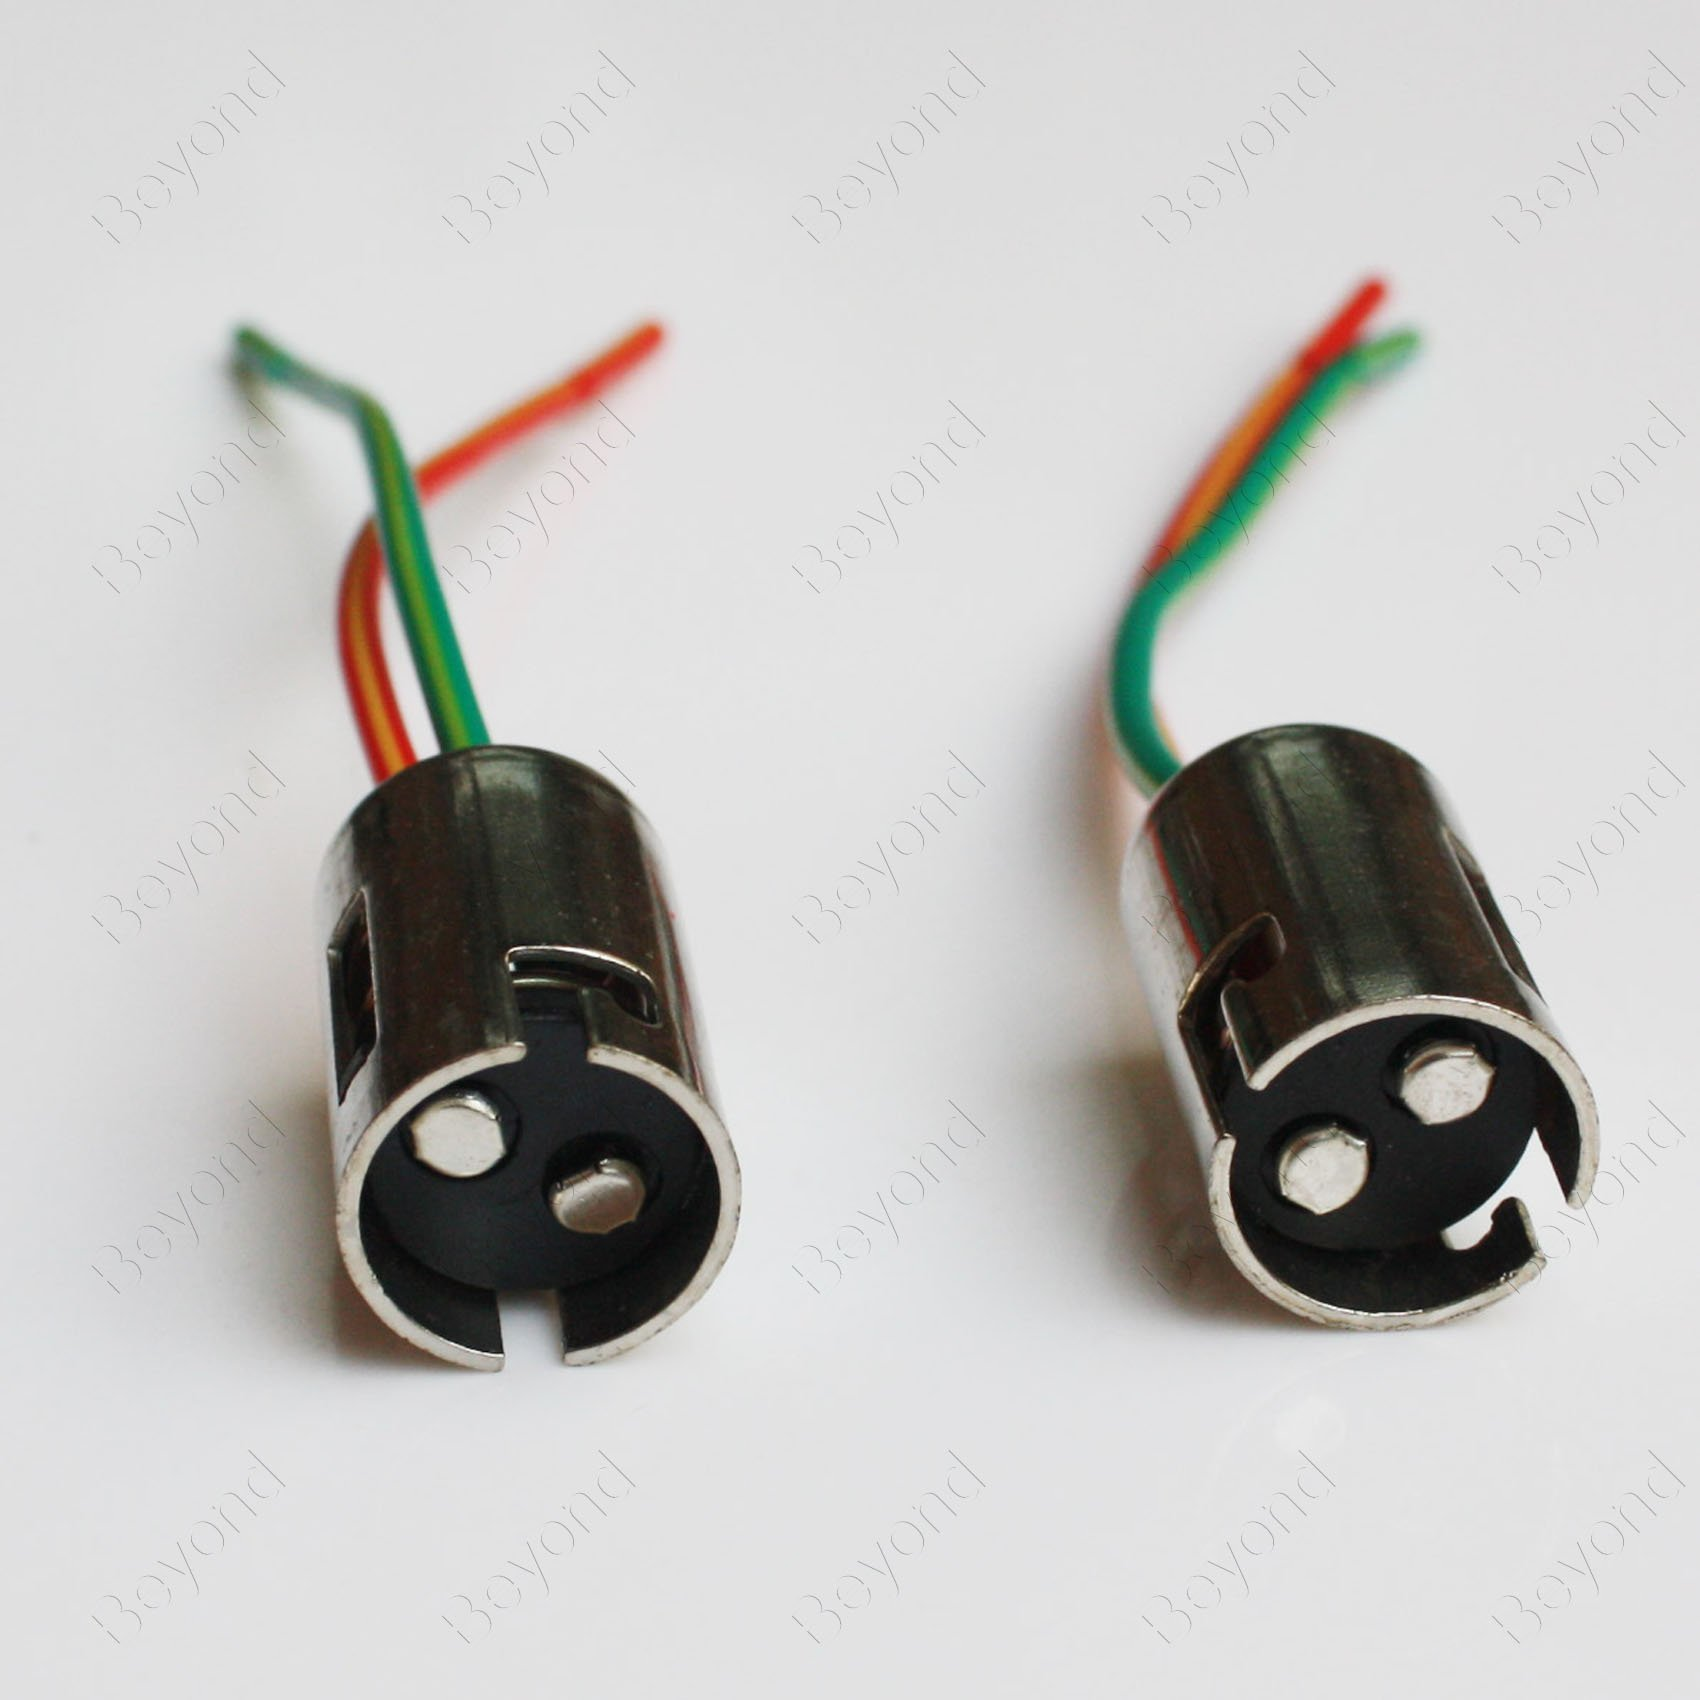 hight resolution of get quotations byopto 2 pcs 1157 bay15d female metal car auto truck headlight fog brake turn